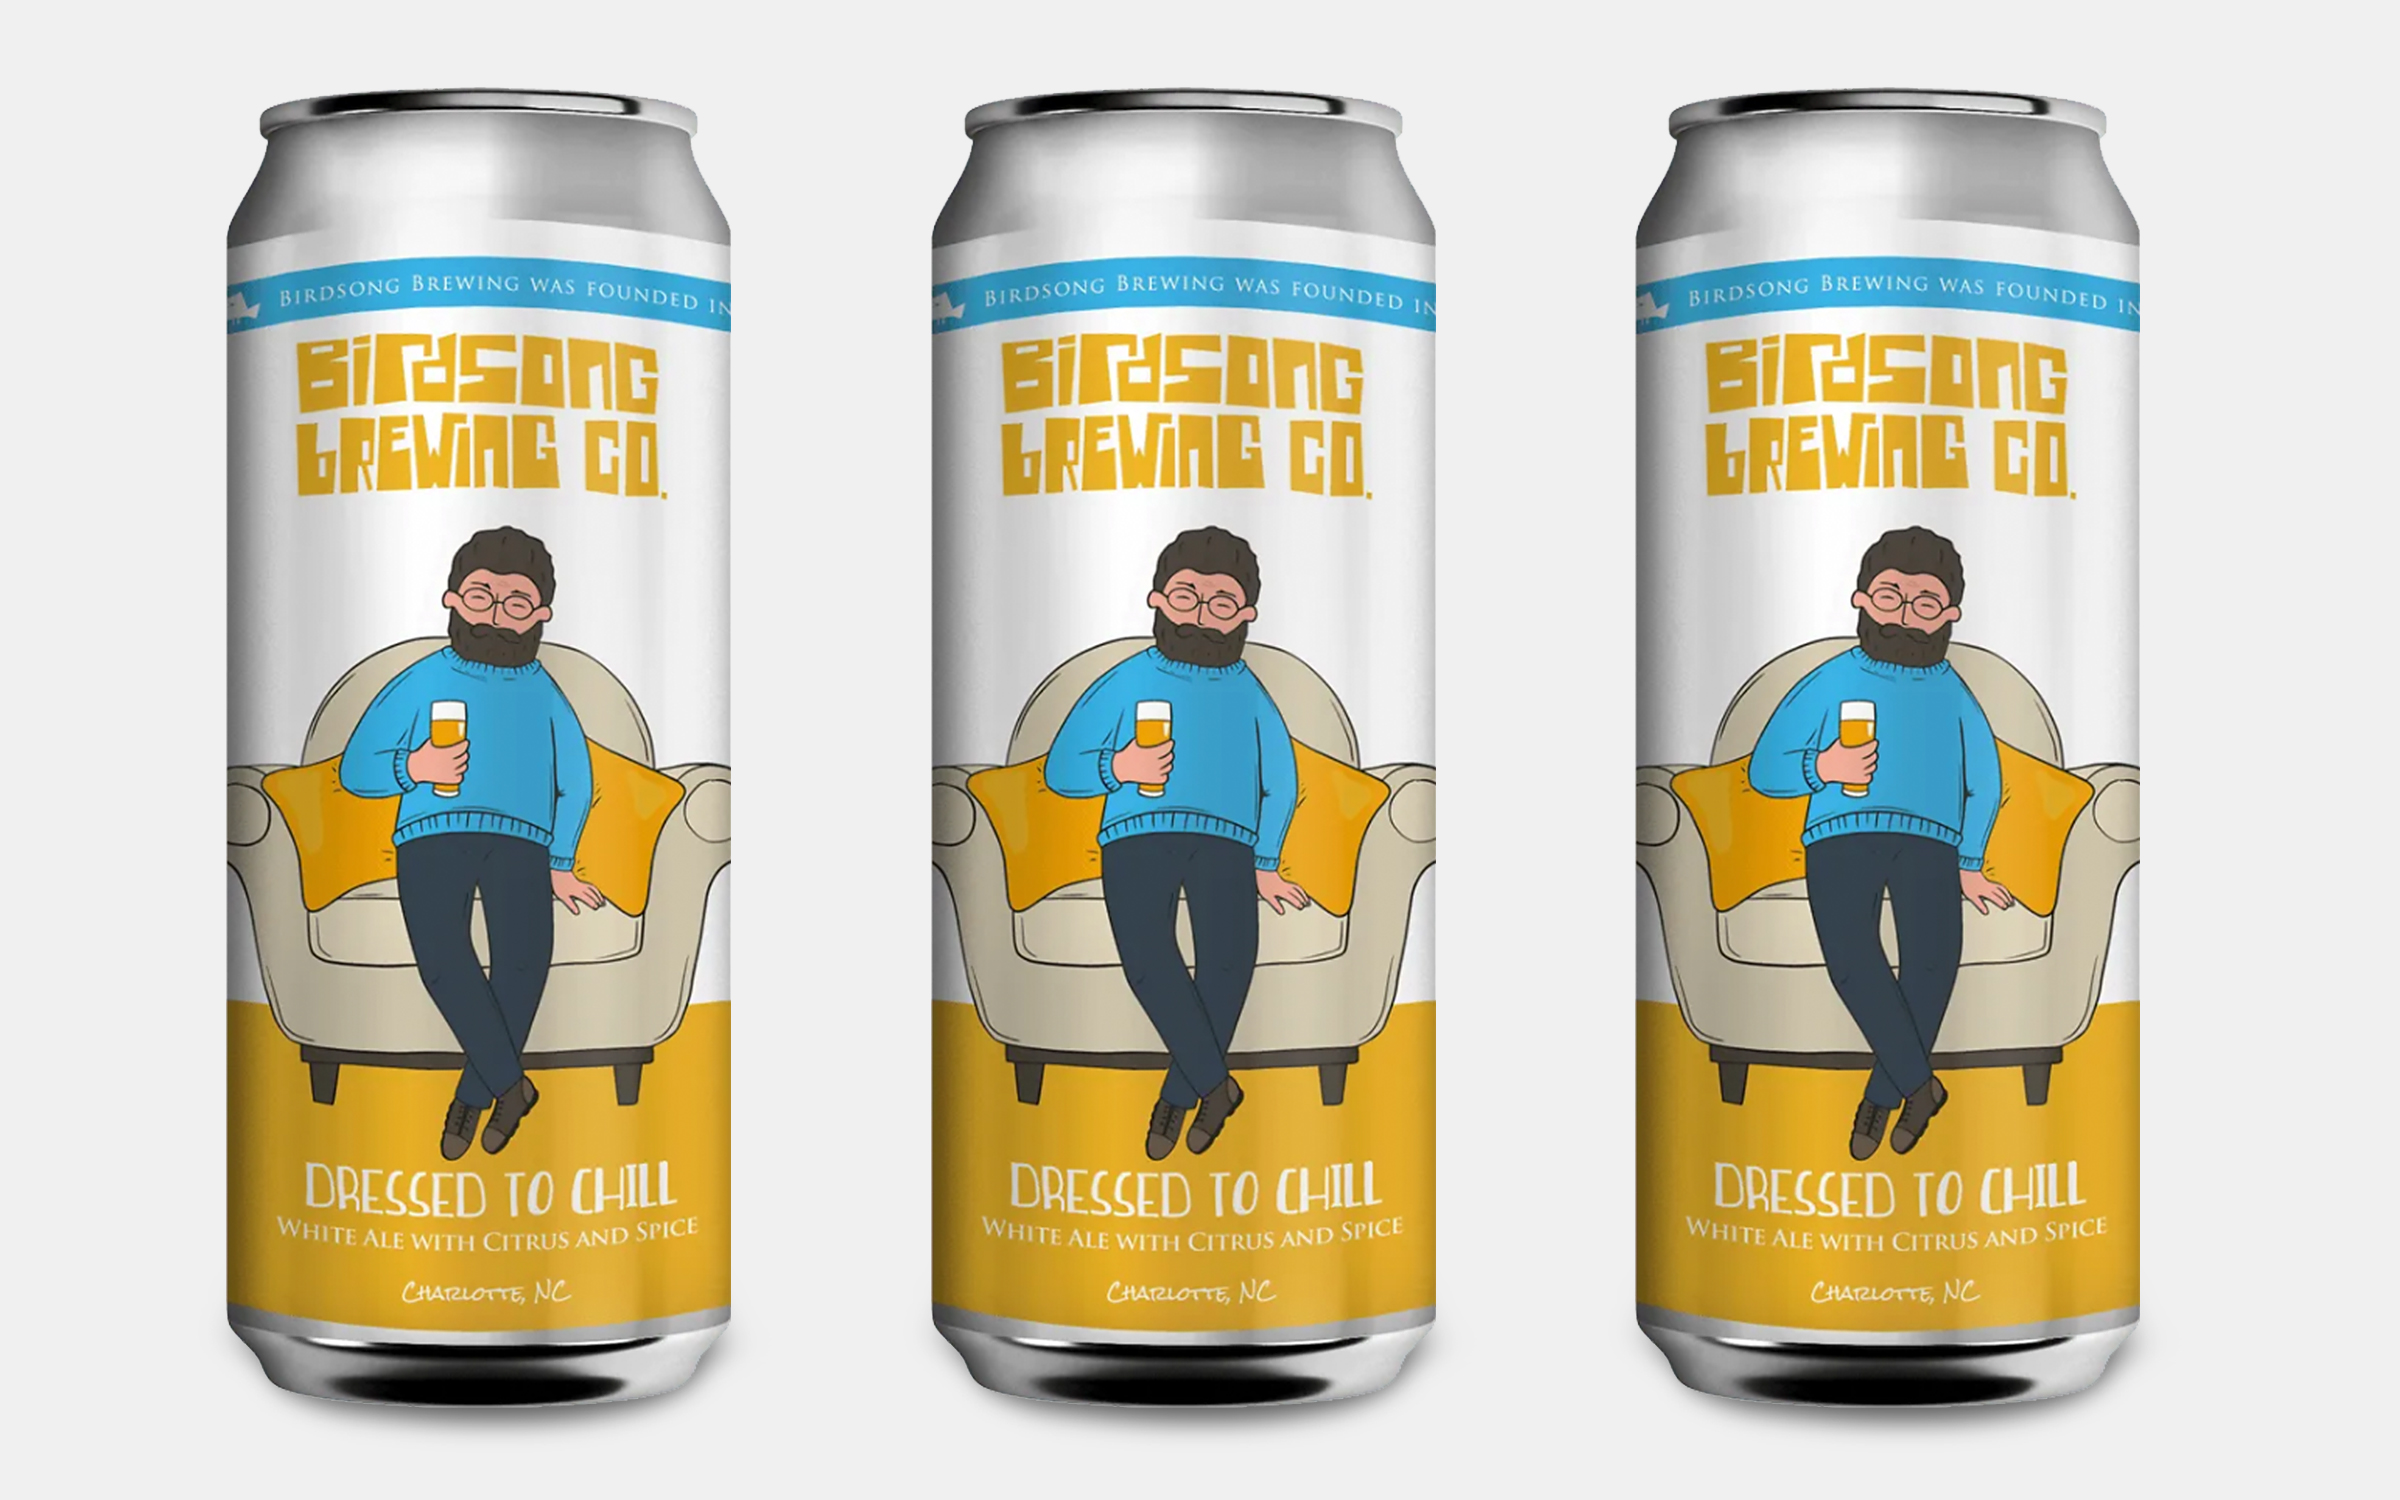 Birdsong Brewing Dressed To Chill White Ale